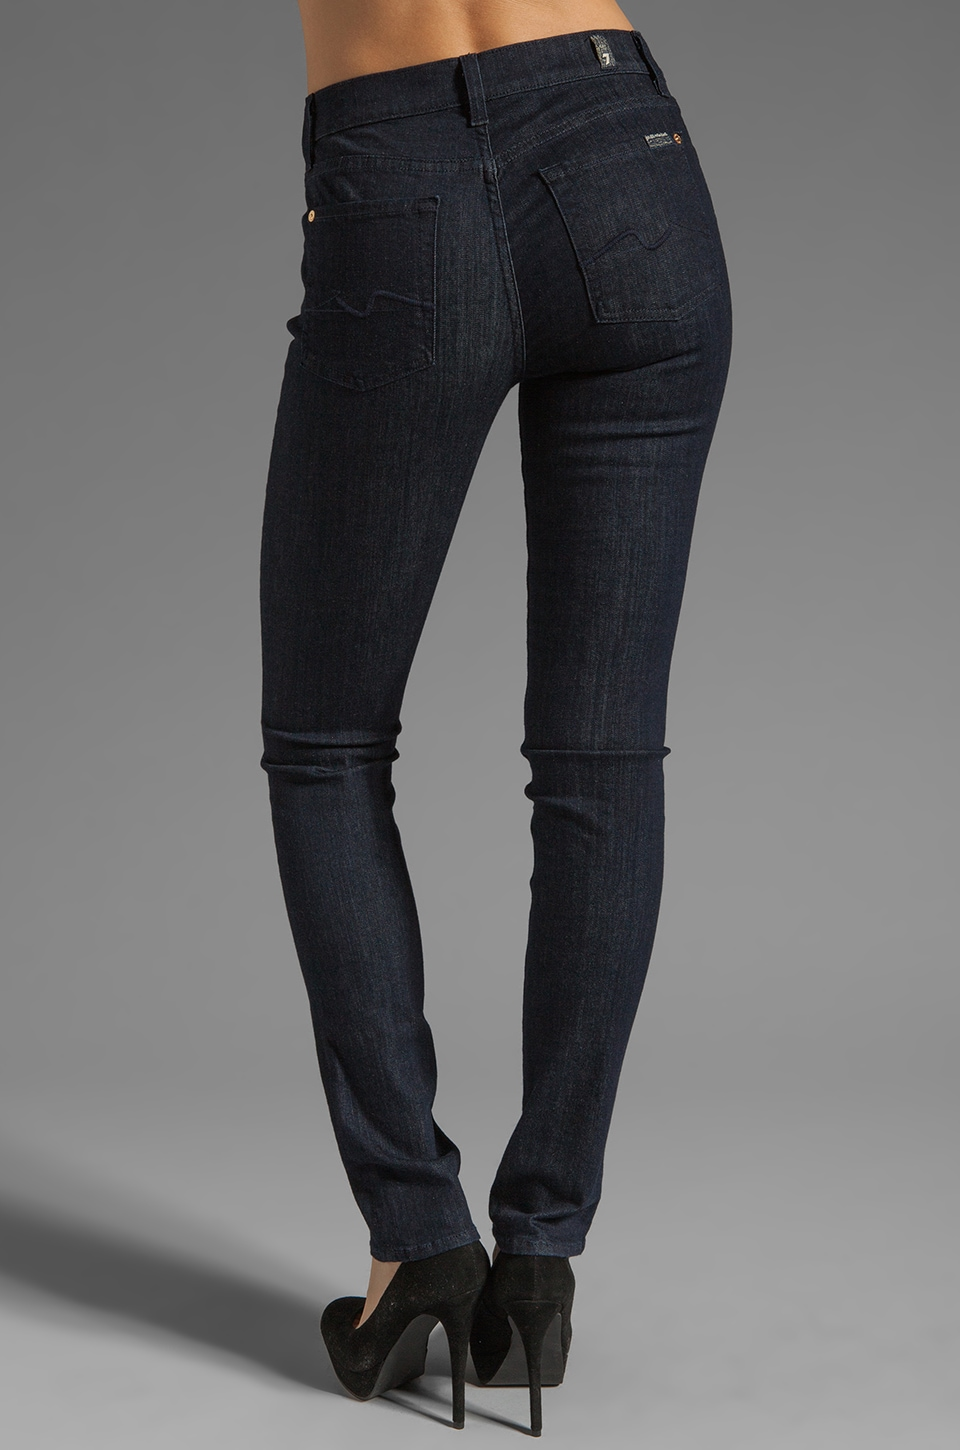 7 For All Mankind Mid Rise Roxanne in Slim Illusion Rinse